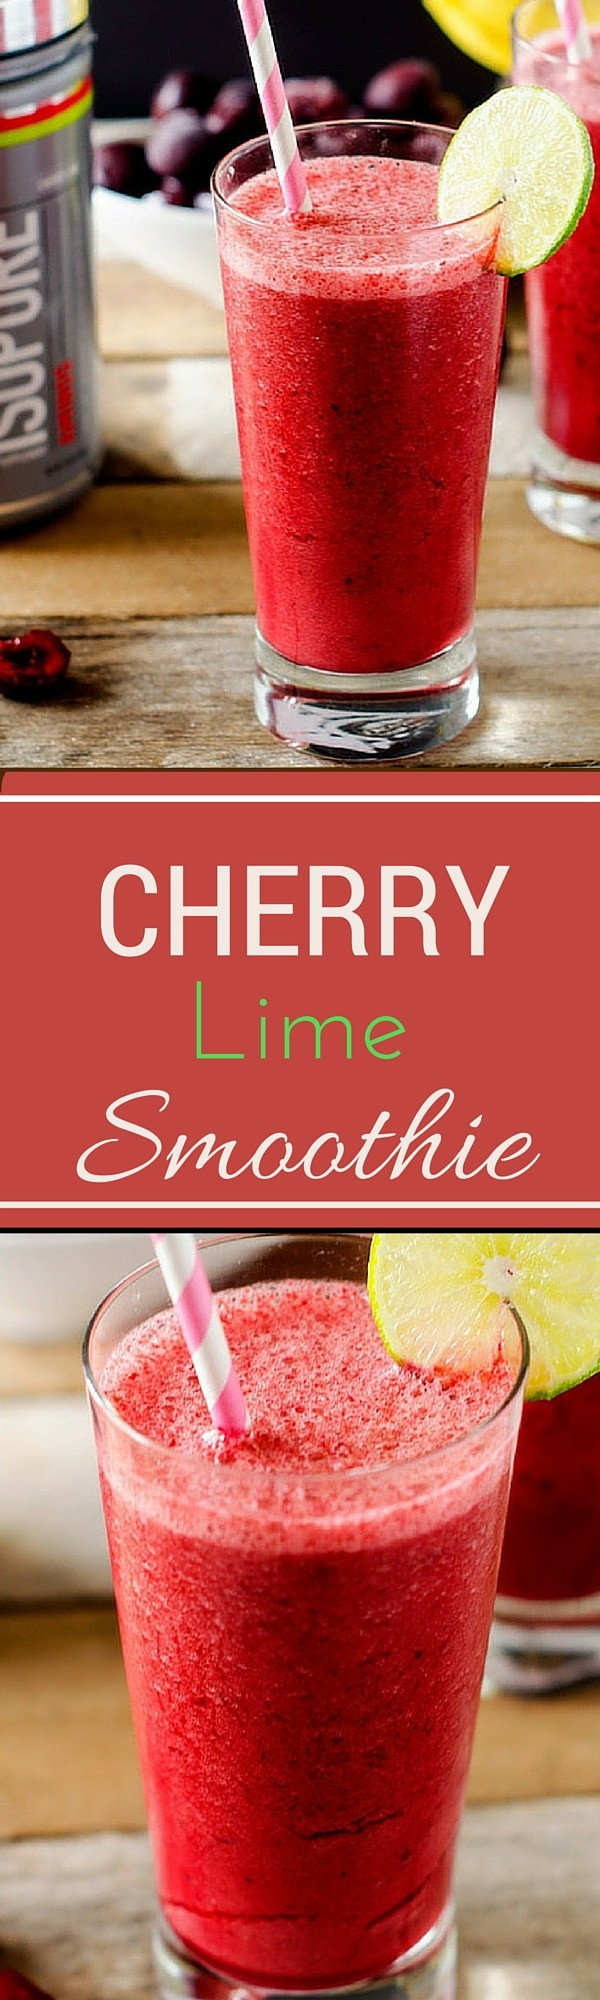 Cherry Lime Smoothie - WendyPolisi.com #behindthemuscle #isopure #sponsored